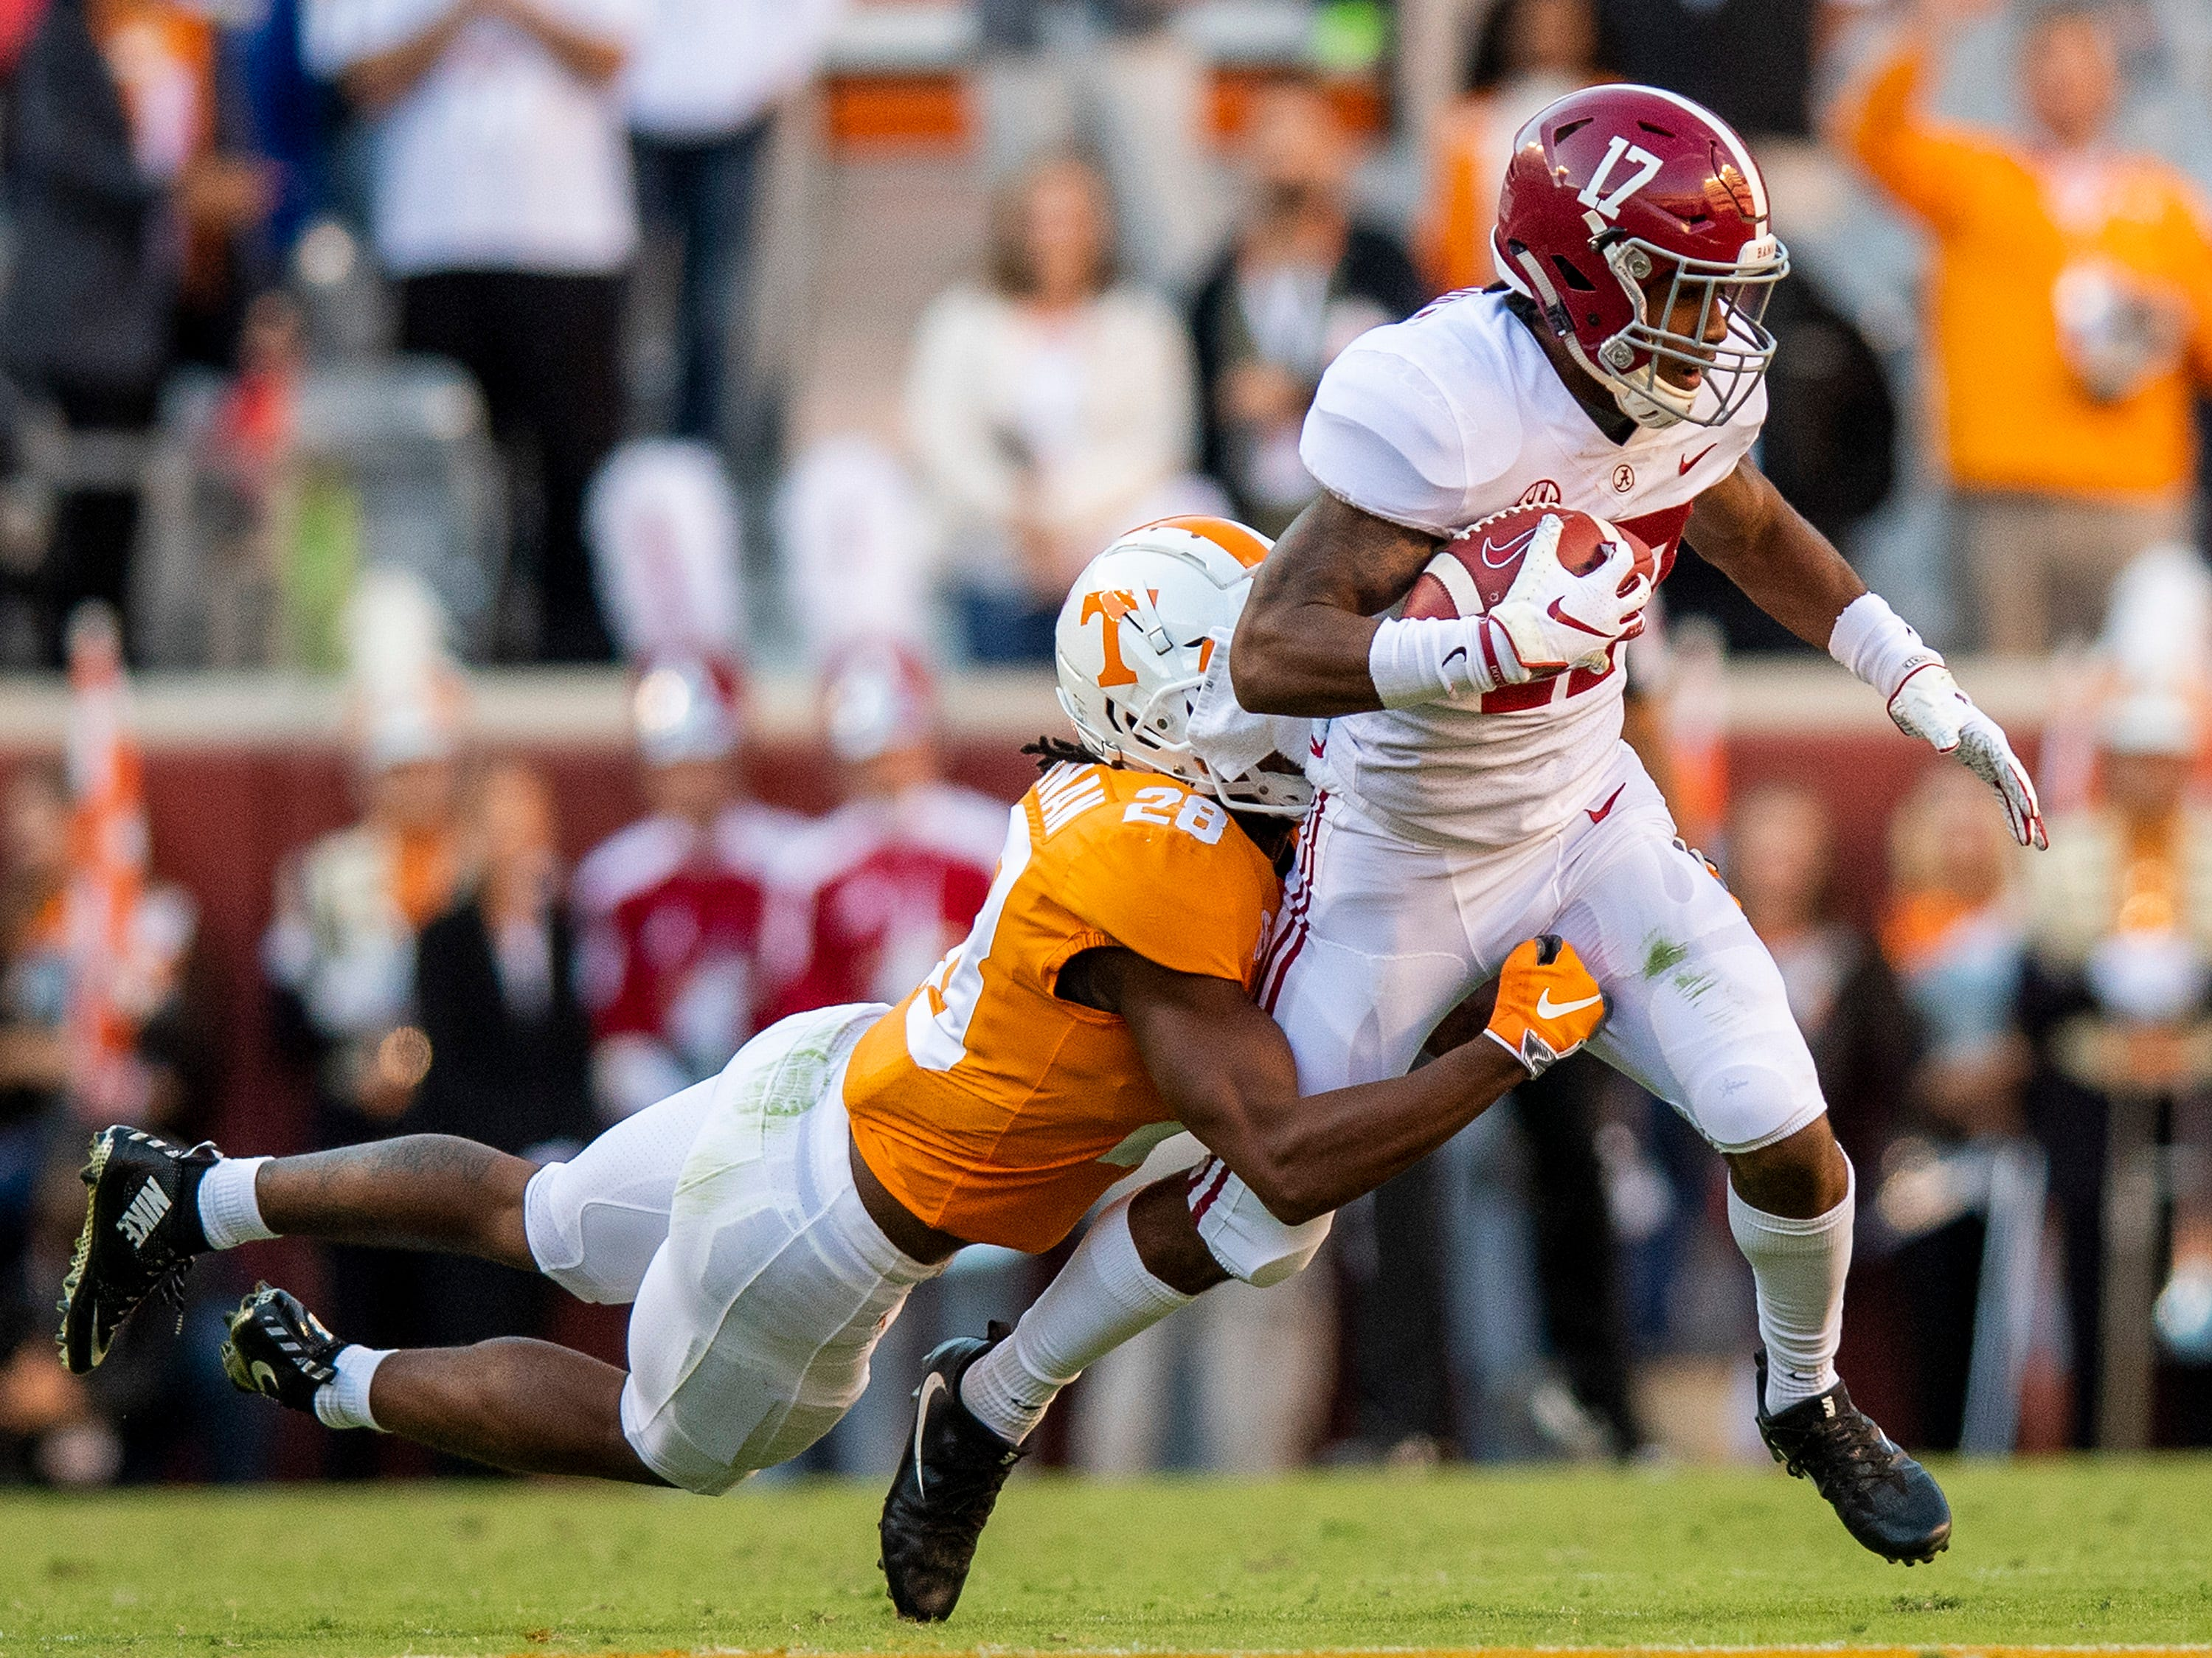 Alabama wide receiver Jaylen Waddle (17) tries to shake the tackle of Tennessee defensive back Baylen Buchanan (28) in first half action at Neyland Stadium in Knoxville, Tn., on Saturday October 20, 2018.